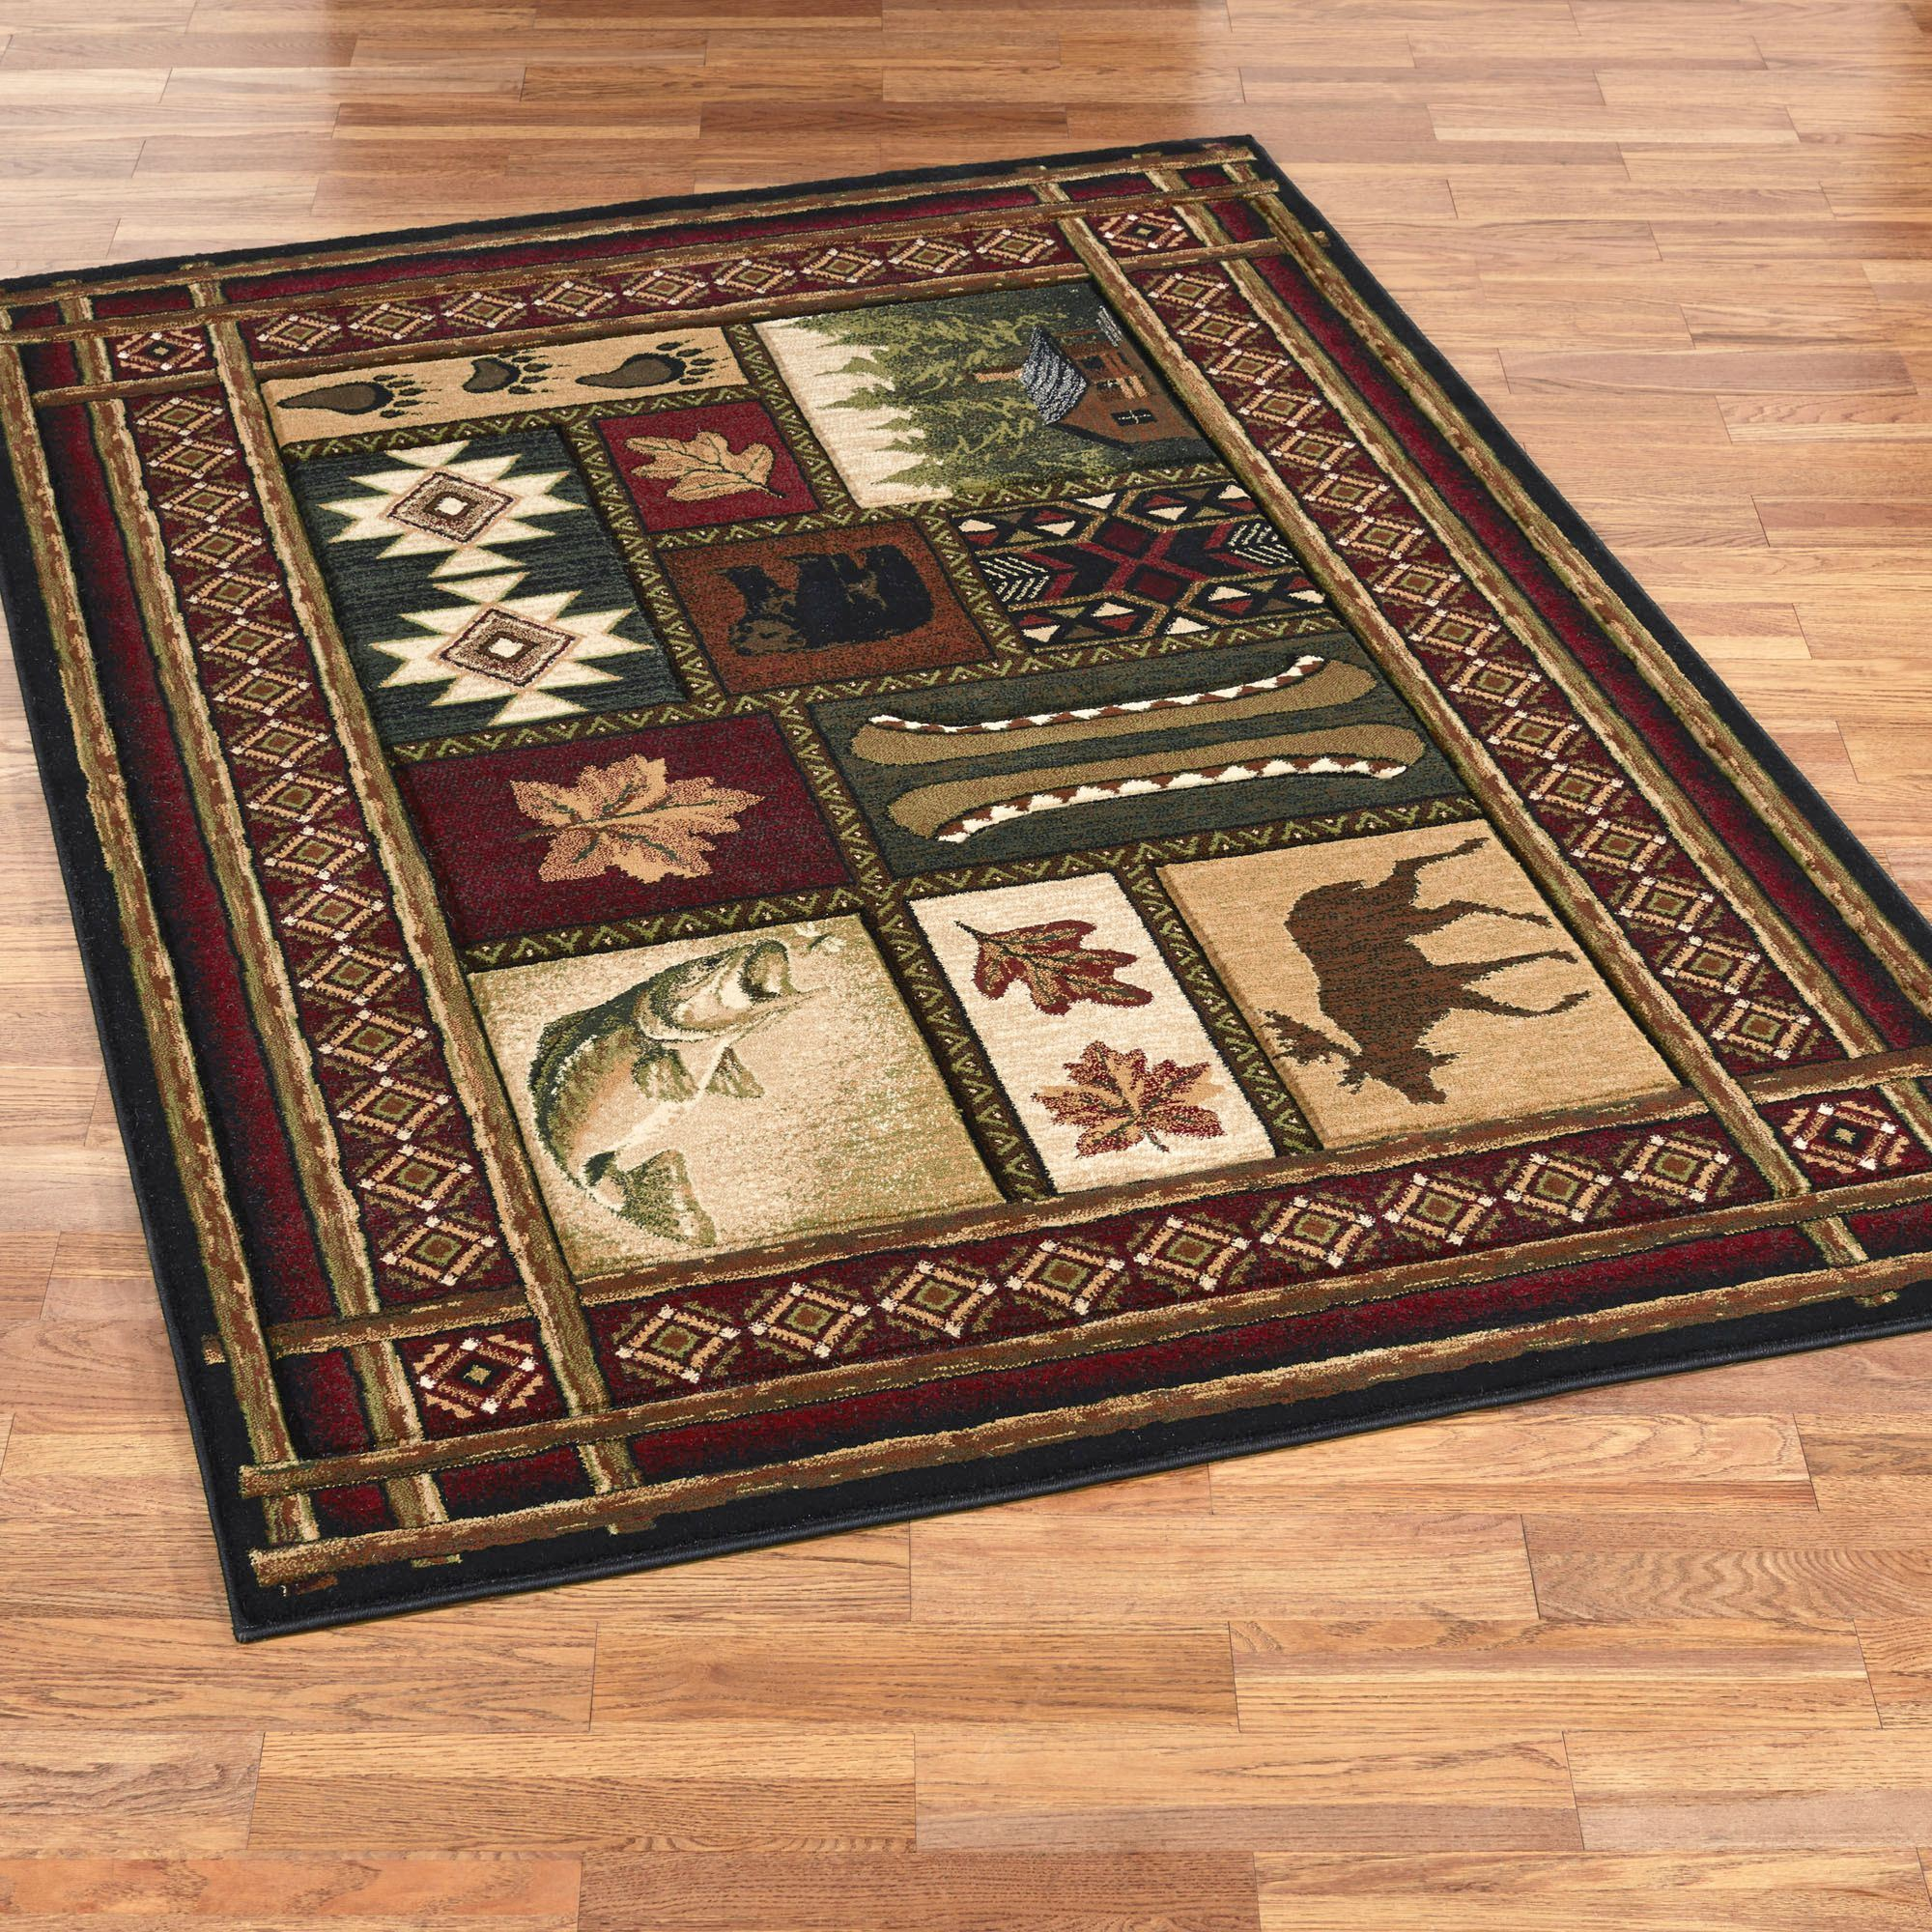 rugs handle floor vinyl hidraulik mats rug ca and locusvie avenir runners products design floormat mat